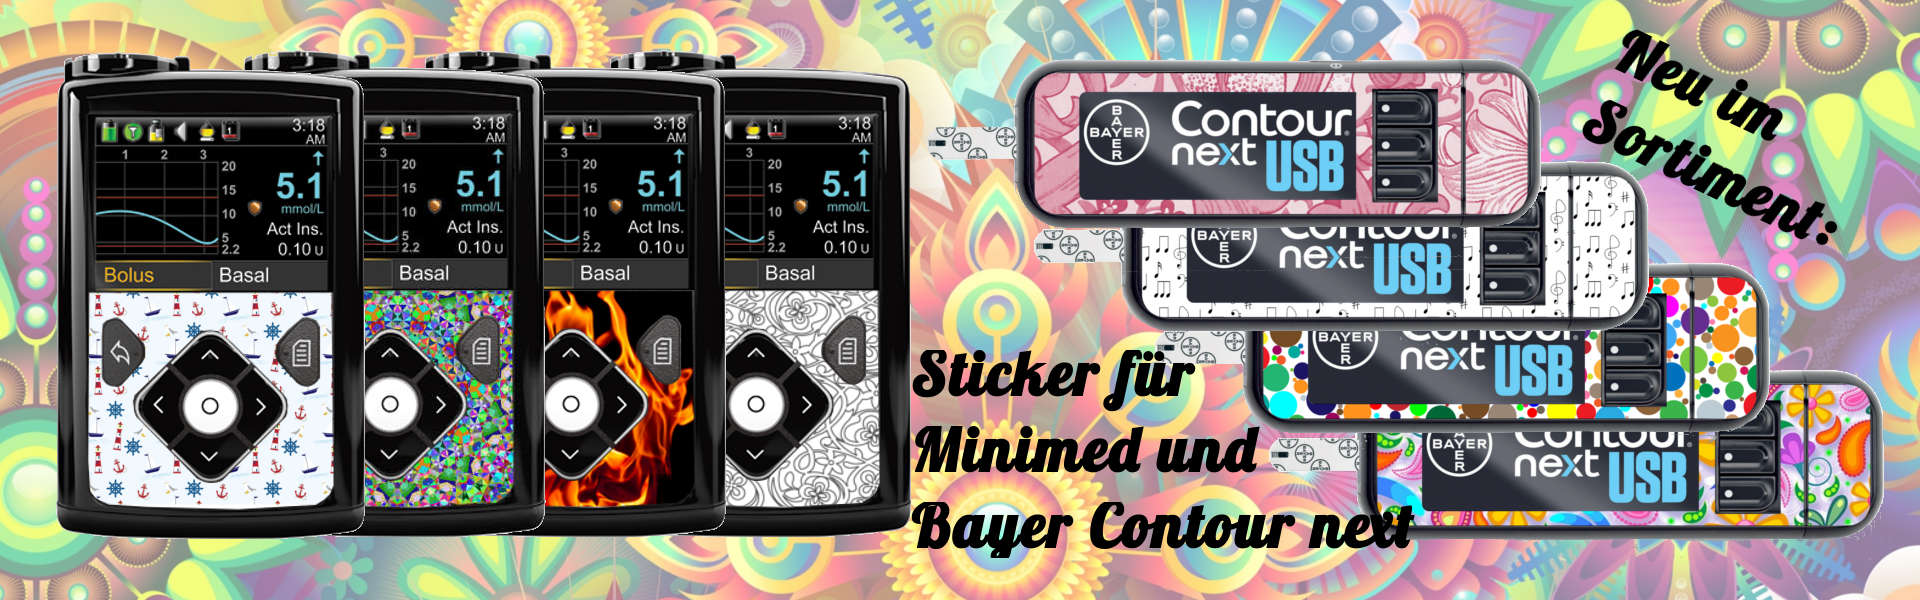 Minimed Sticker Bayer Contour Sticker